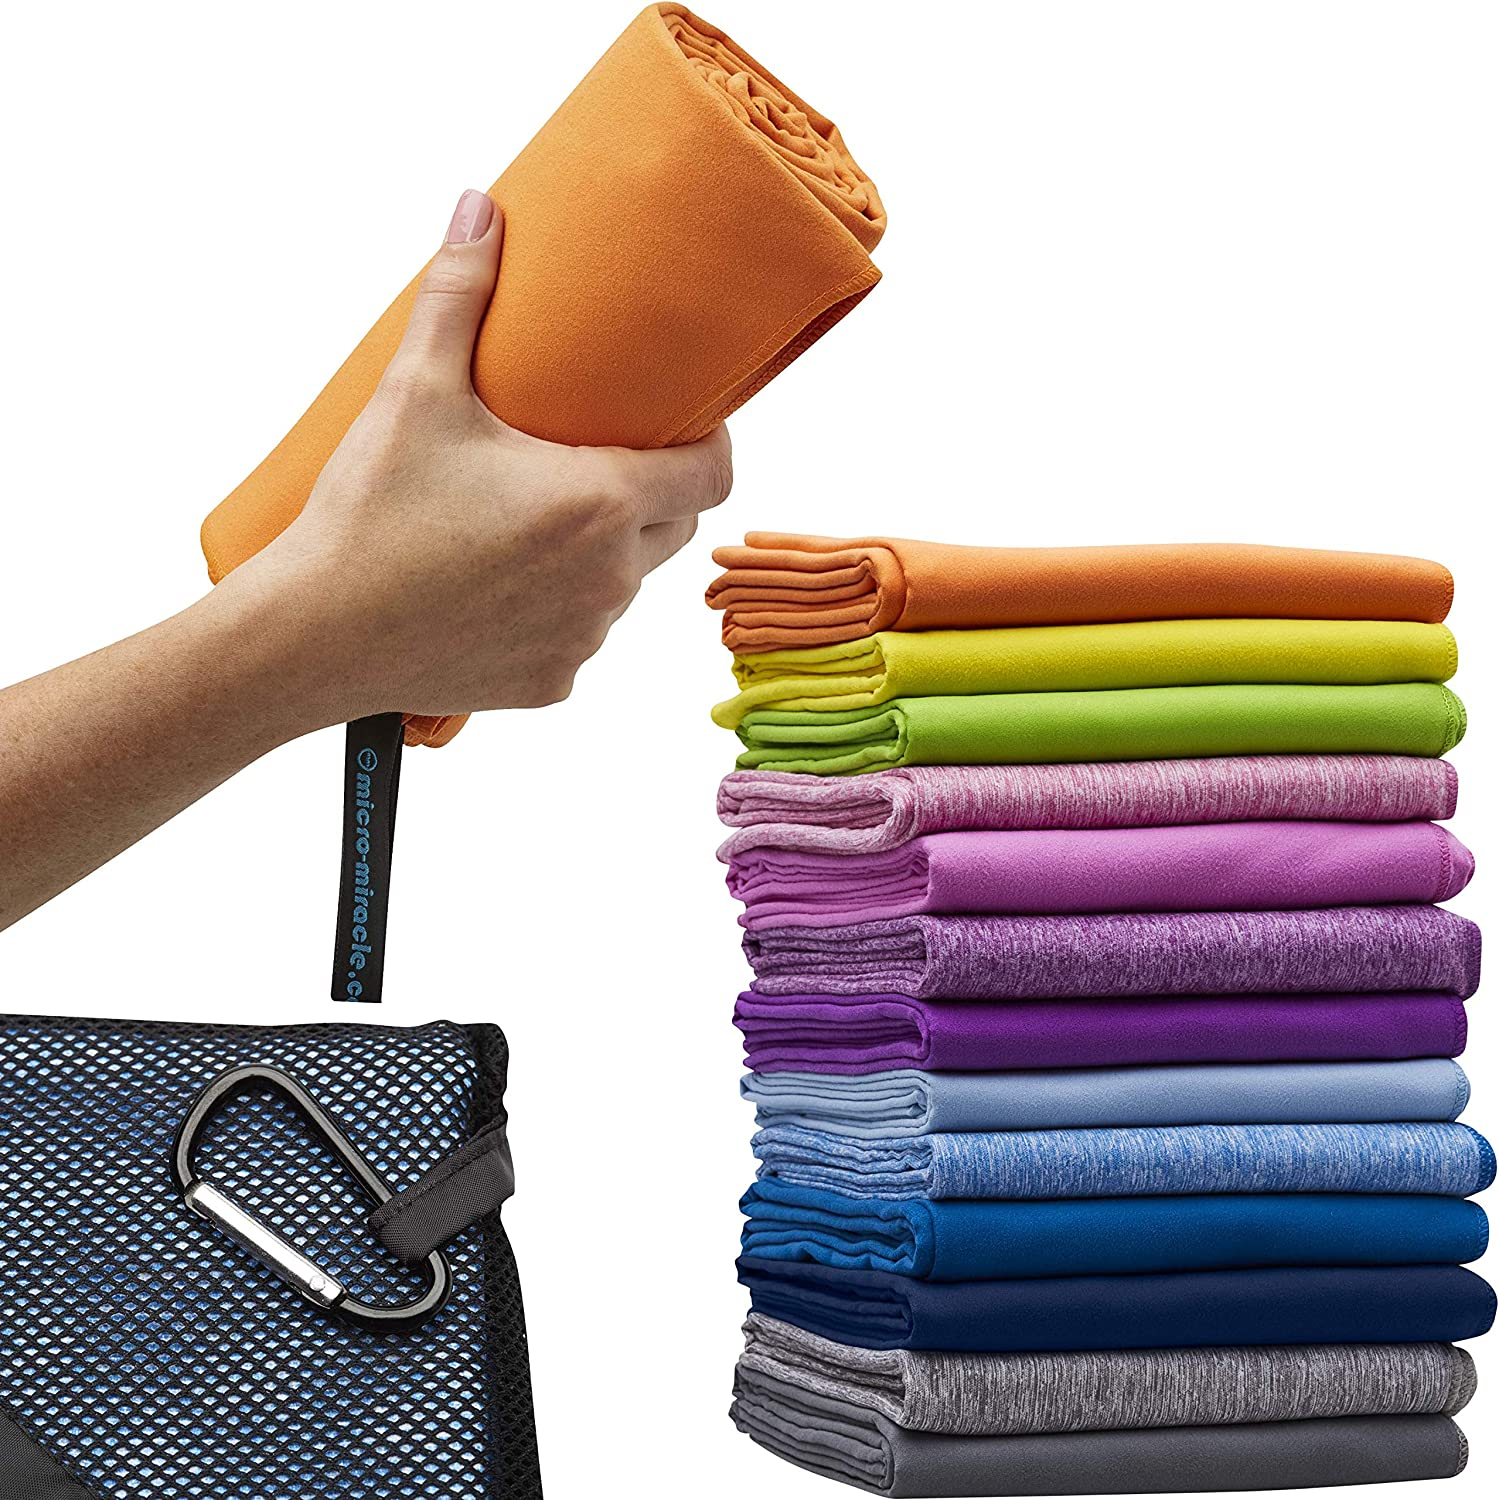 Micro-Miracle XL (30-Inch-by-60-Inch) Soft Microfiber Travel Towel with Hand Towel and Nylon Mesh Carry Bag orange Sunrise